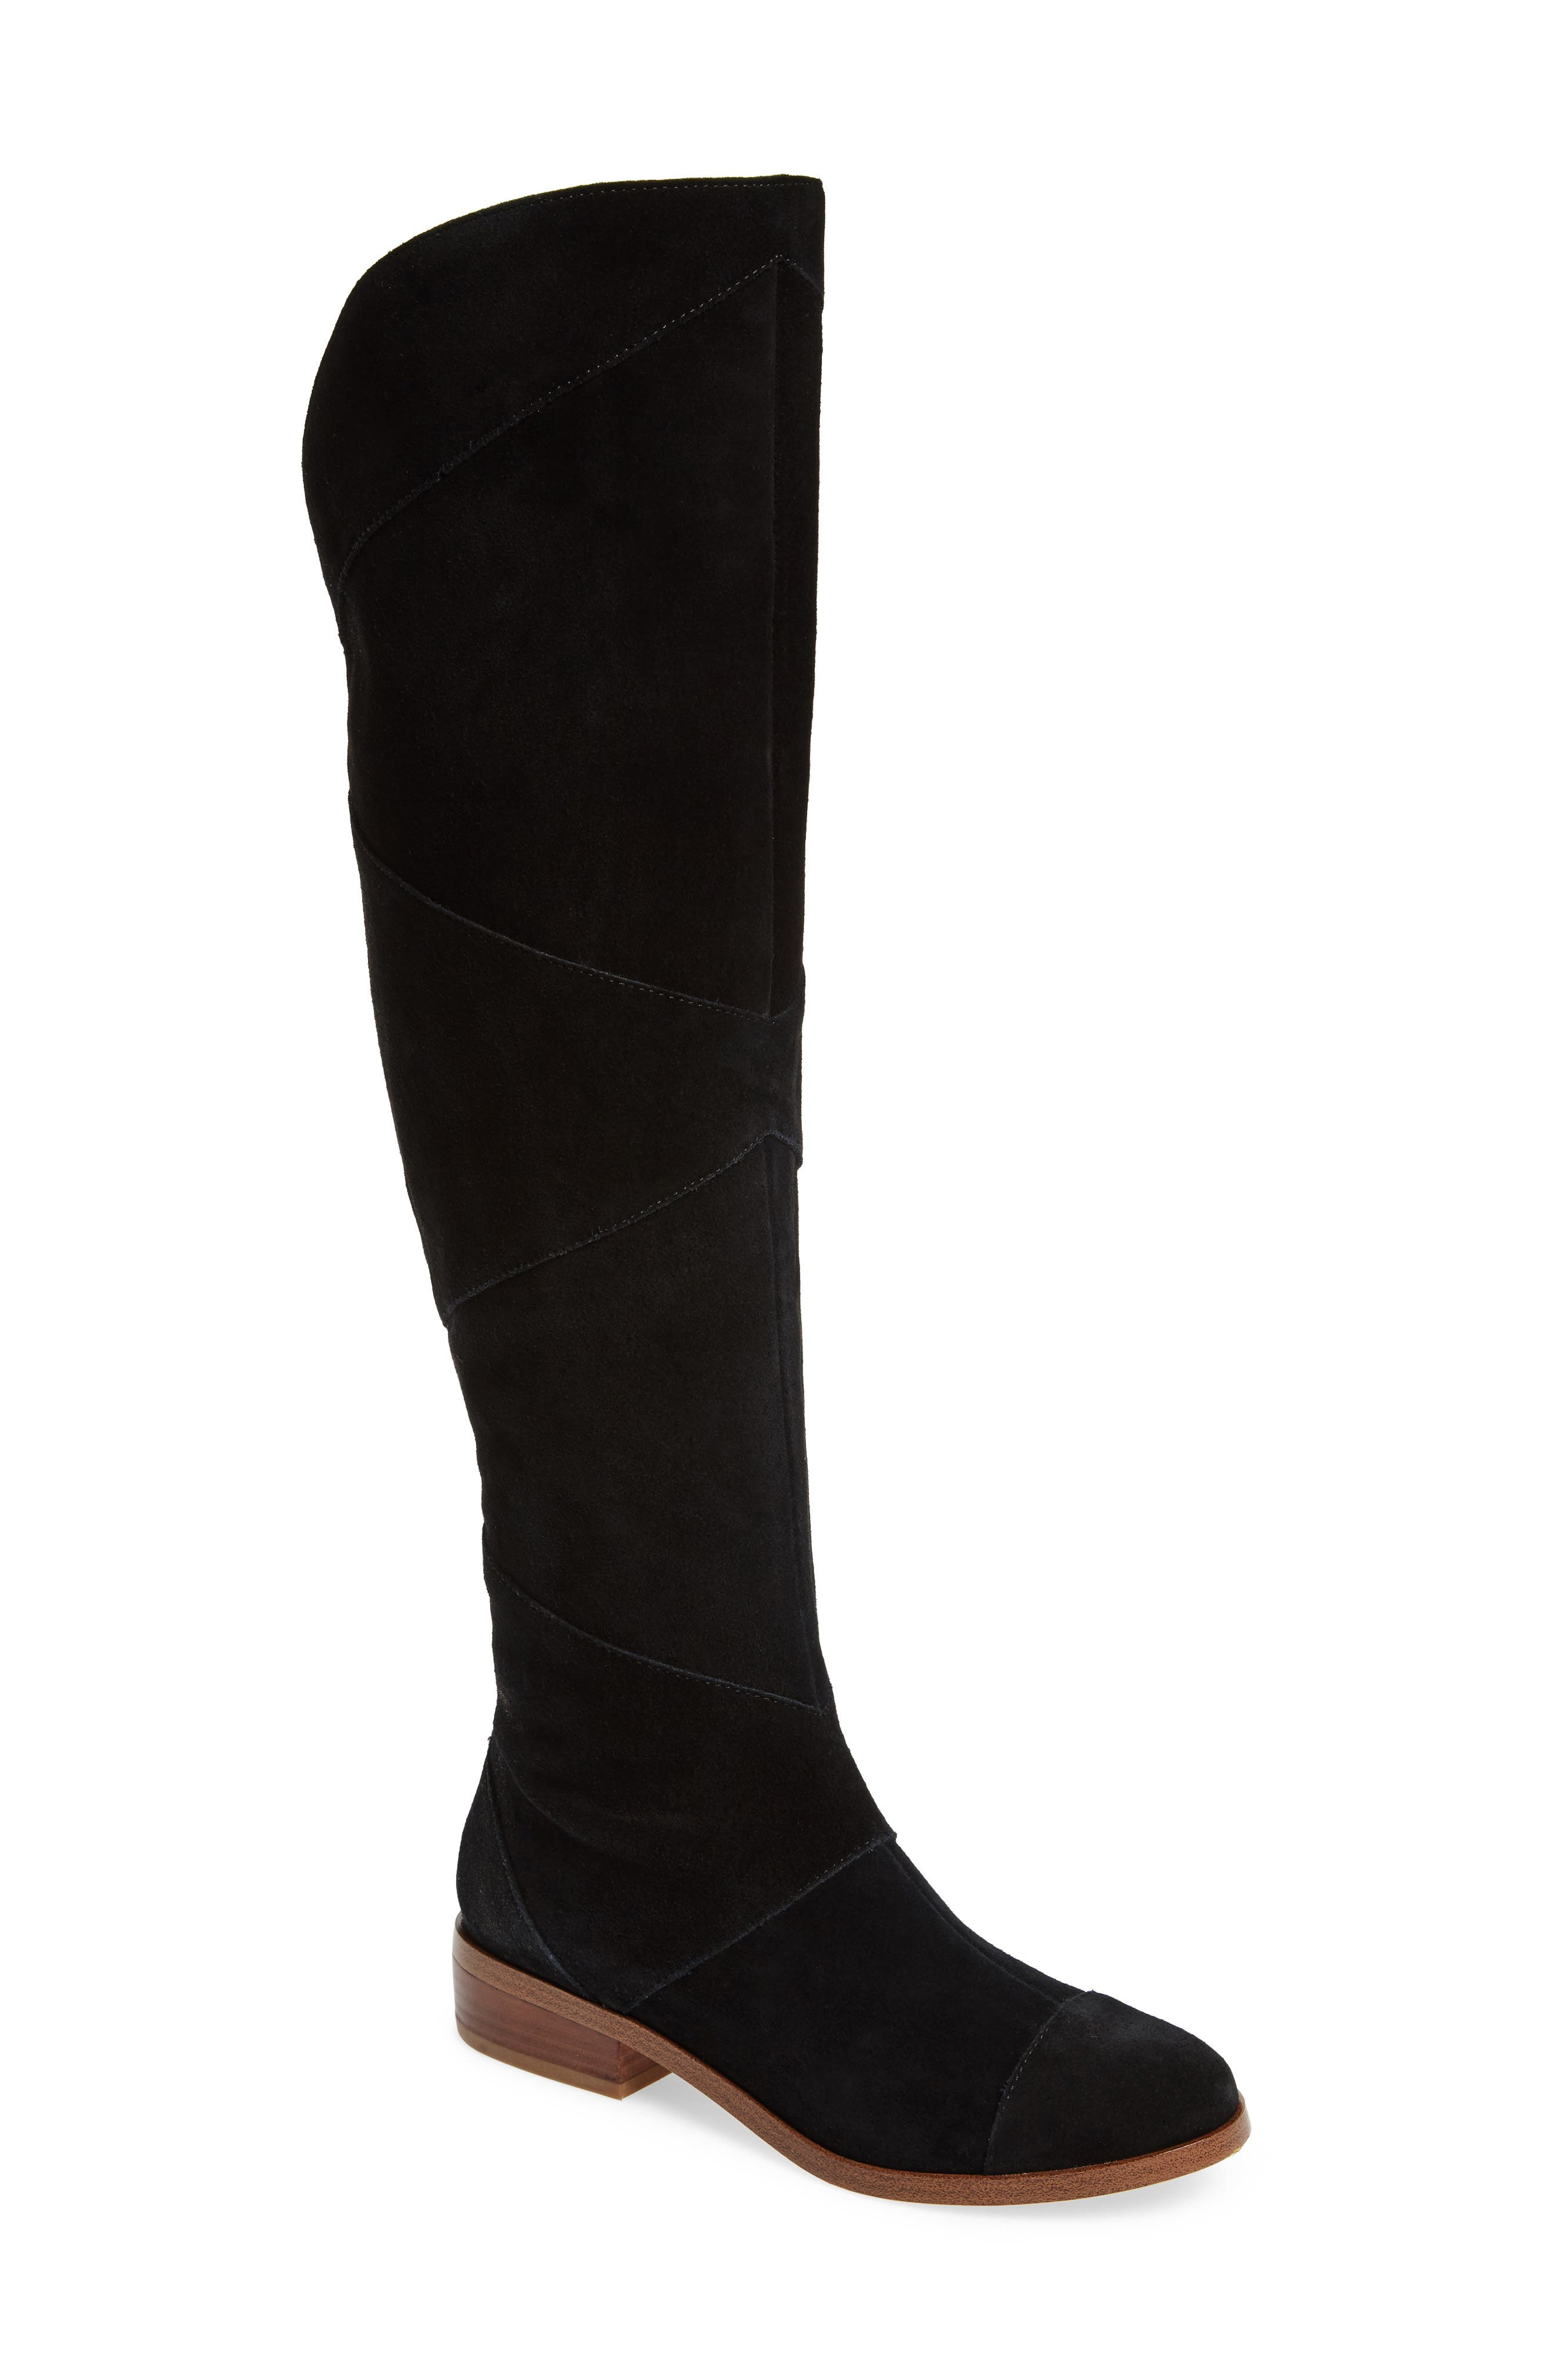 Tiff Over the Knee Boot,                             Main thumbnail 1, color,                             BLACK